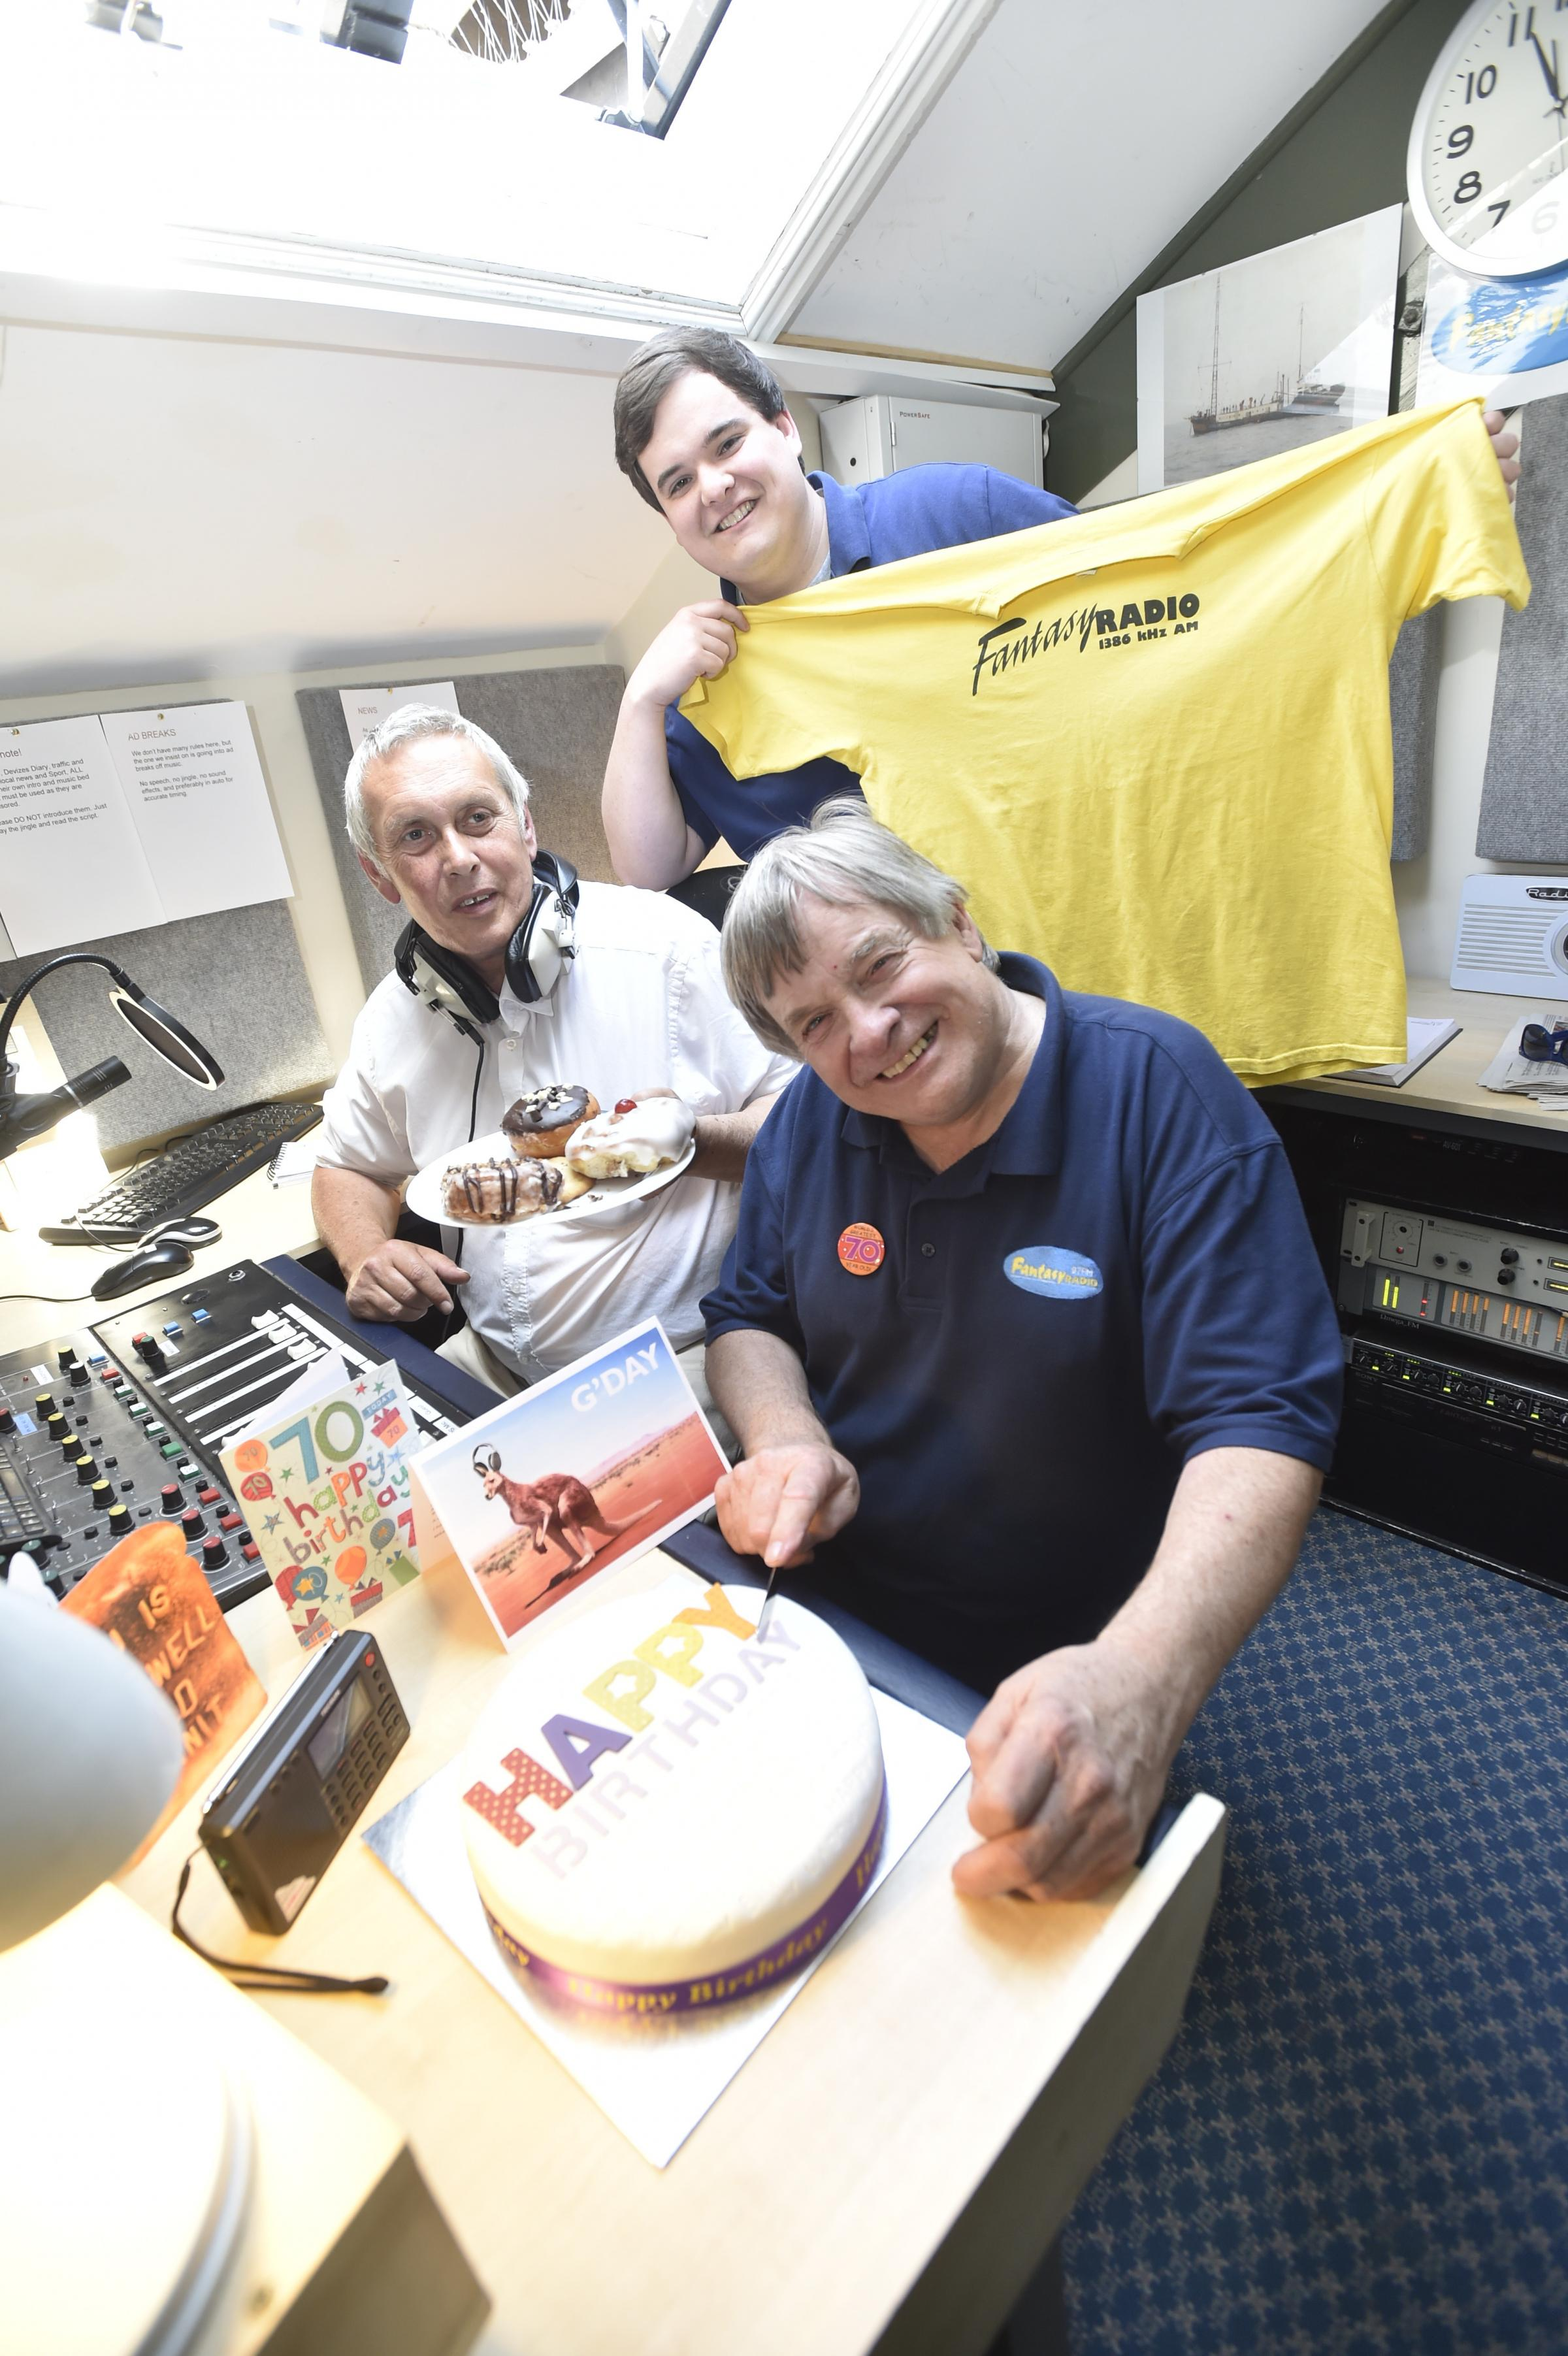 Fantasy Radio in Devizes is celebrating its 20th anniversary on air. From left, John Peters and Tom and Phil Dawson. By Diane Vose DV2315/04